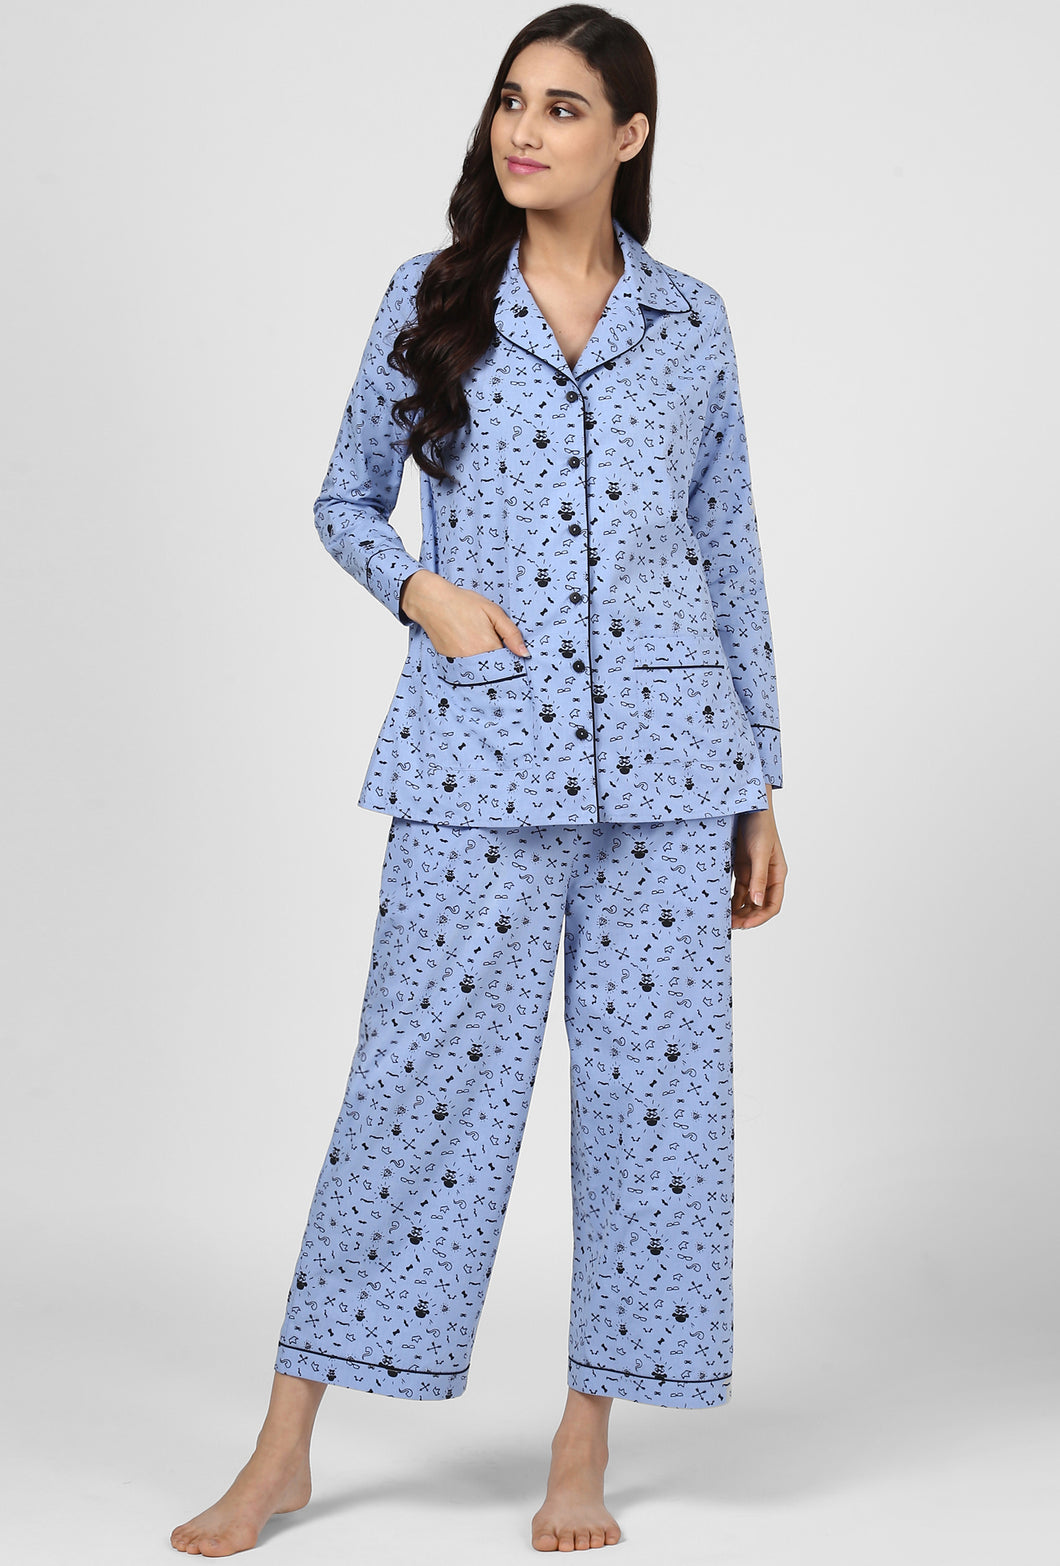 Blue Print Midnight Musings Night Suit